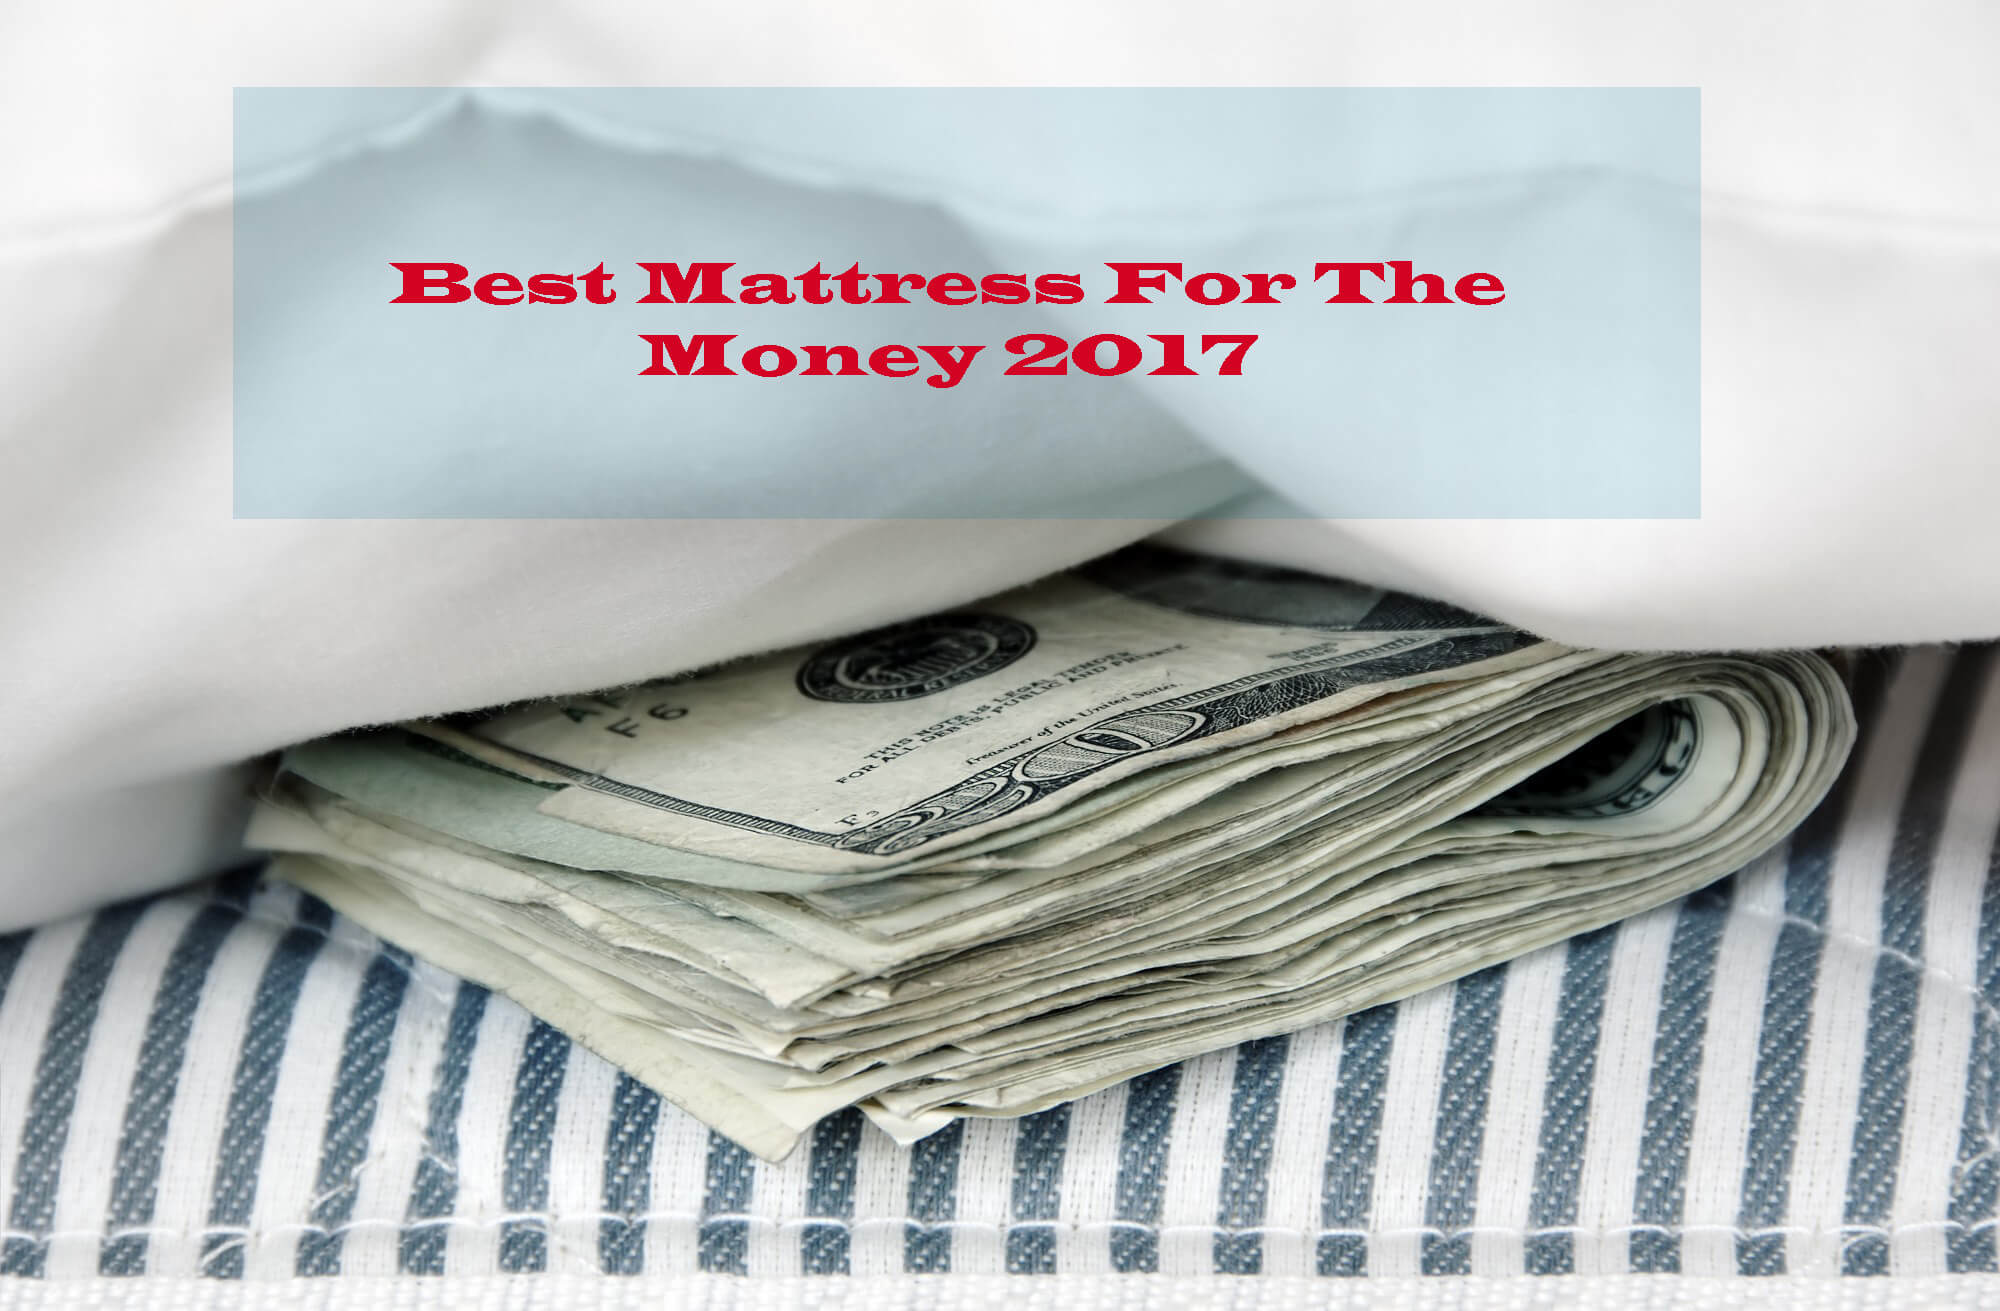 Best Mattress For The Money 2017